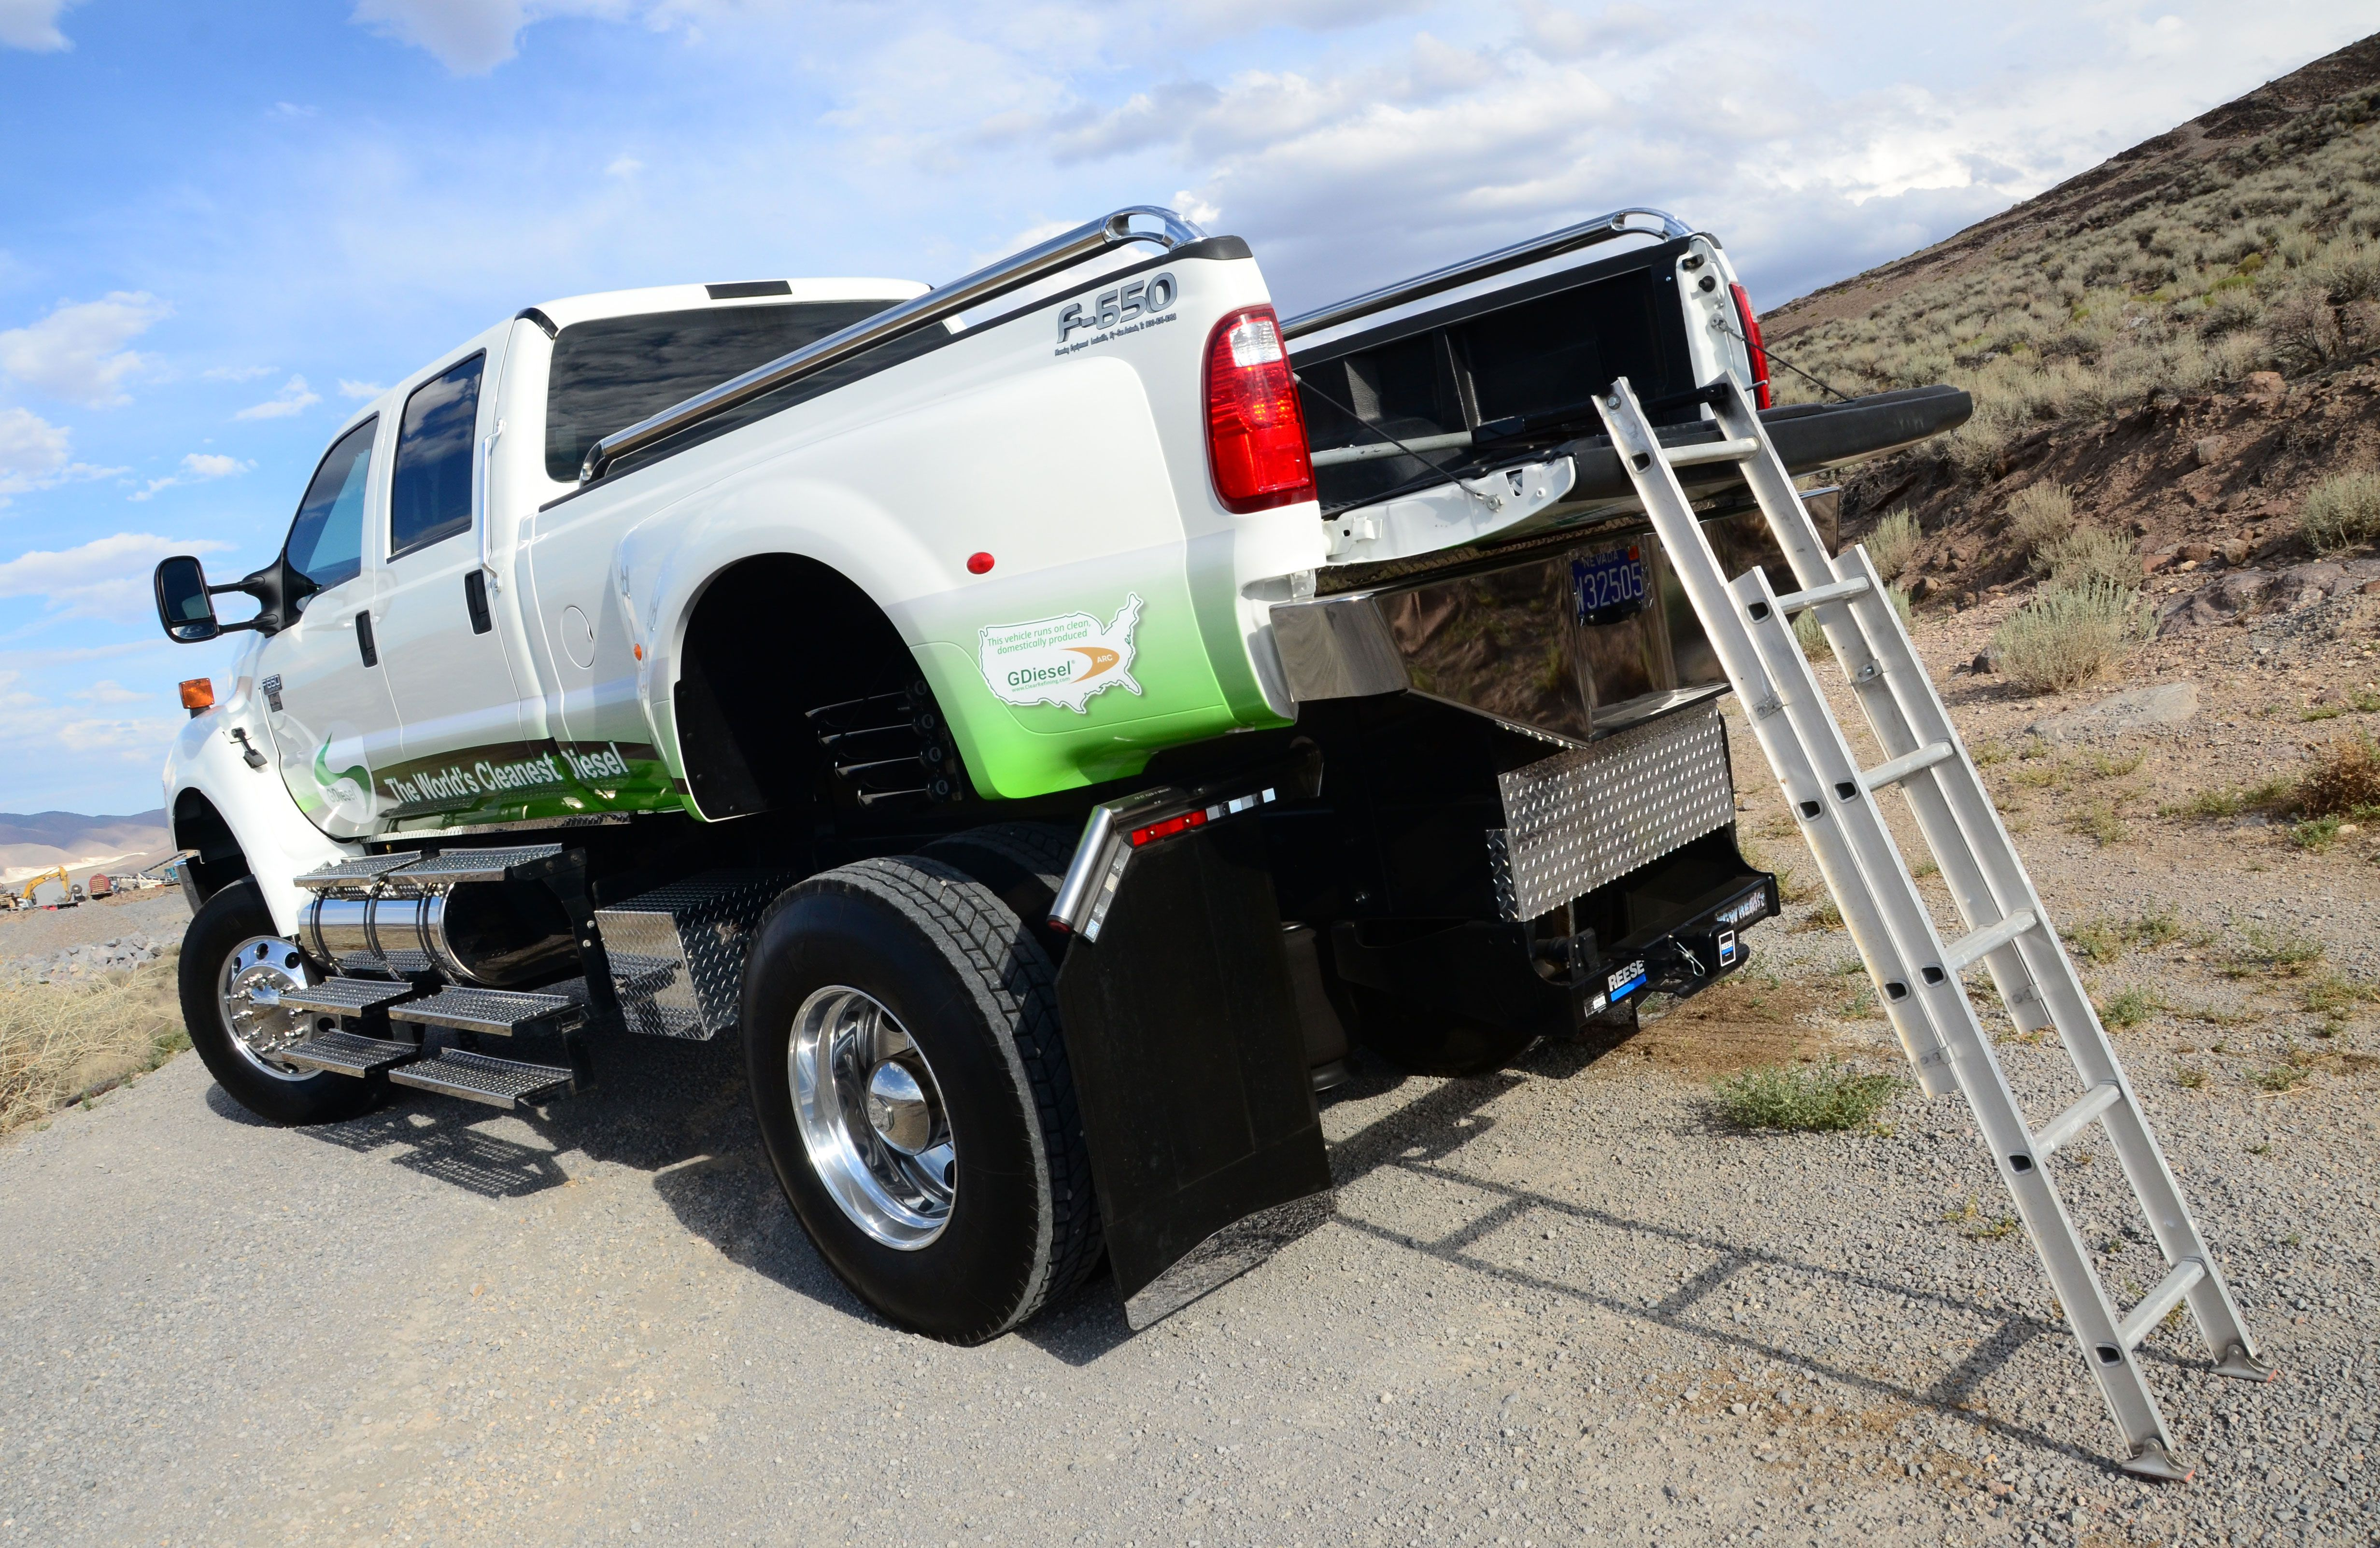 Use Truck Luxury which Alternative Fuel Should You Use In Your Work Truck Photo